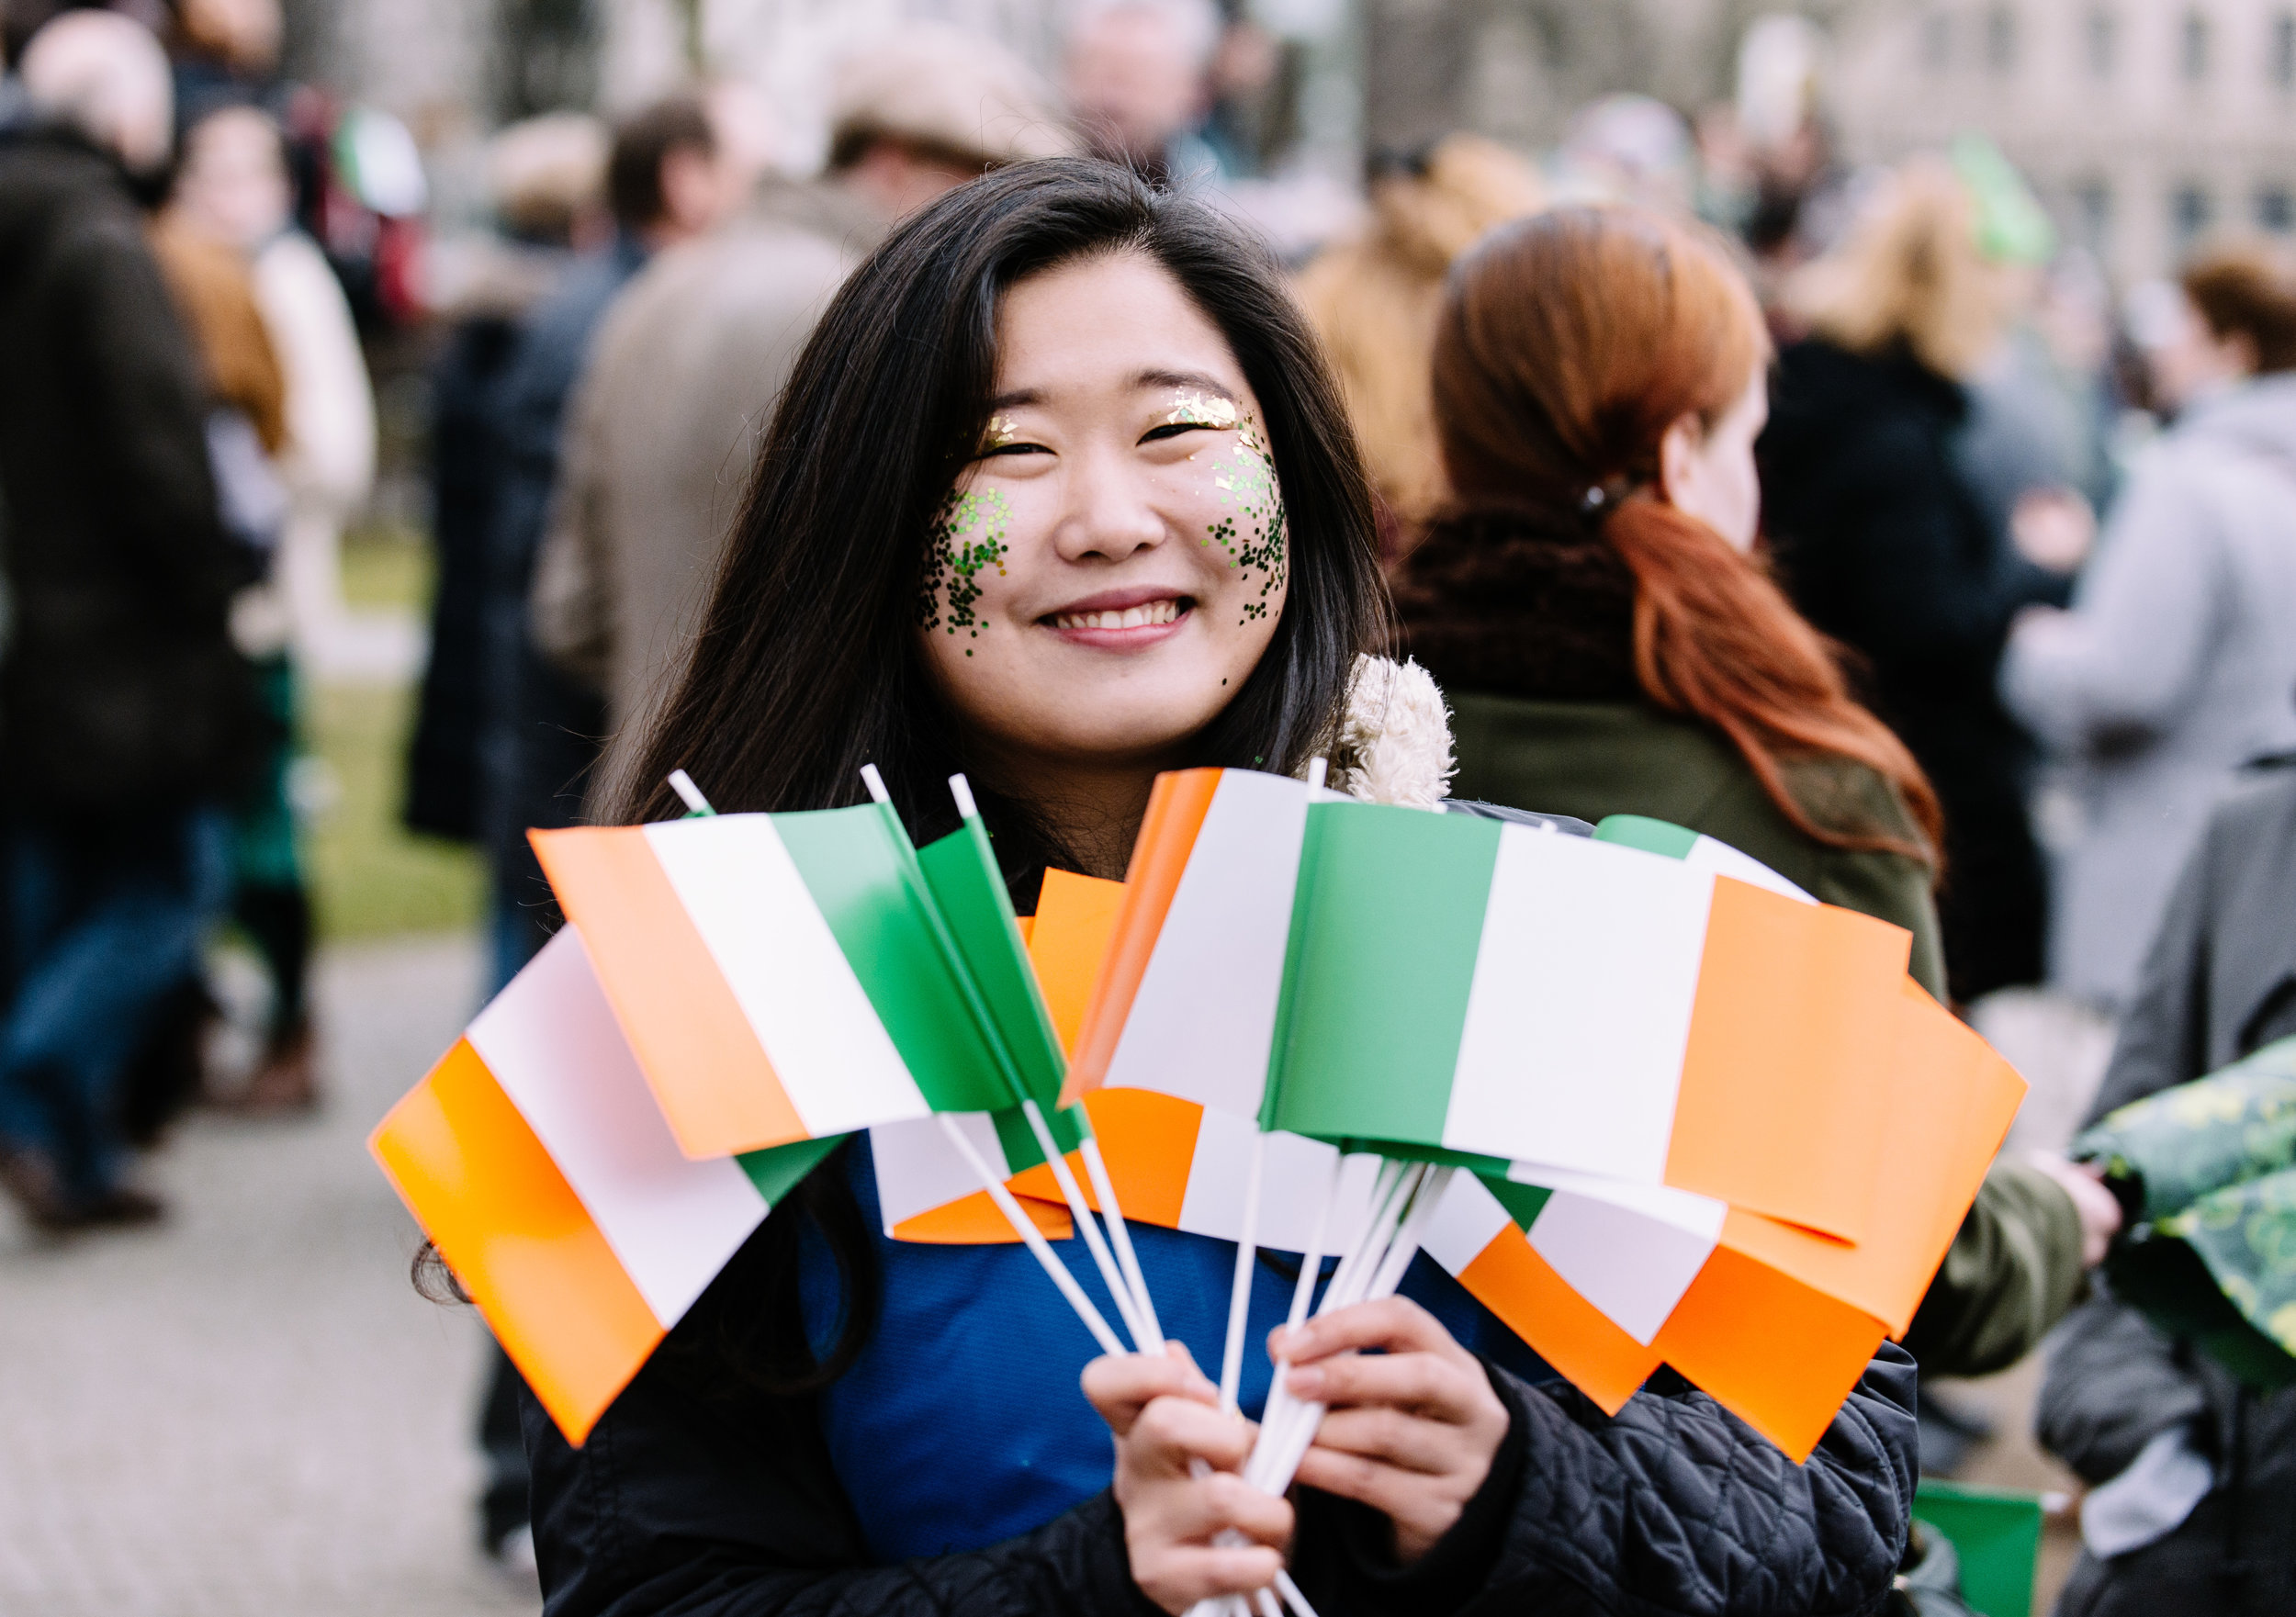 st-patricks-day-berlin-all-34.jpg